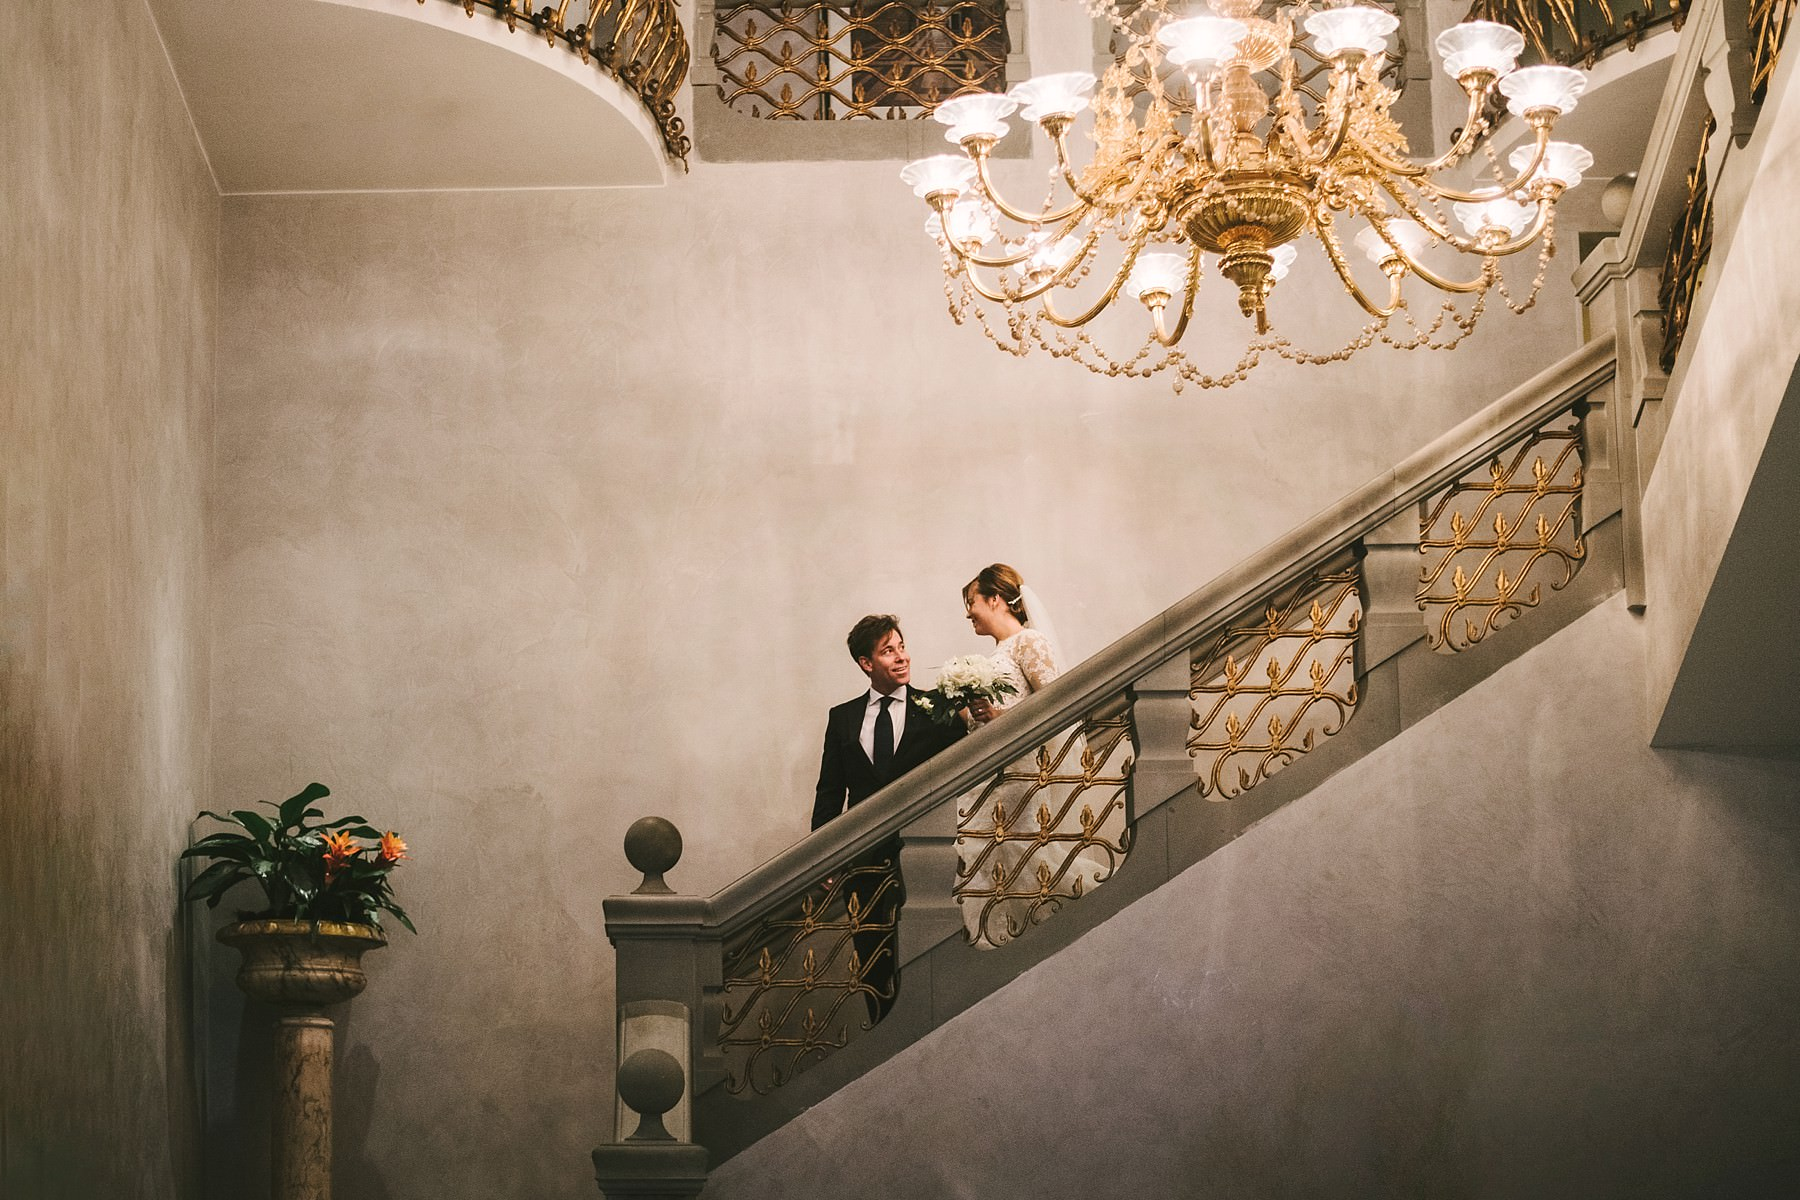 Candid wedding photo with bride and groom walk down the staircase from Sala delle Feste Ballroom at Luxury hotel St. Regis Florence